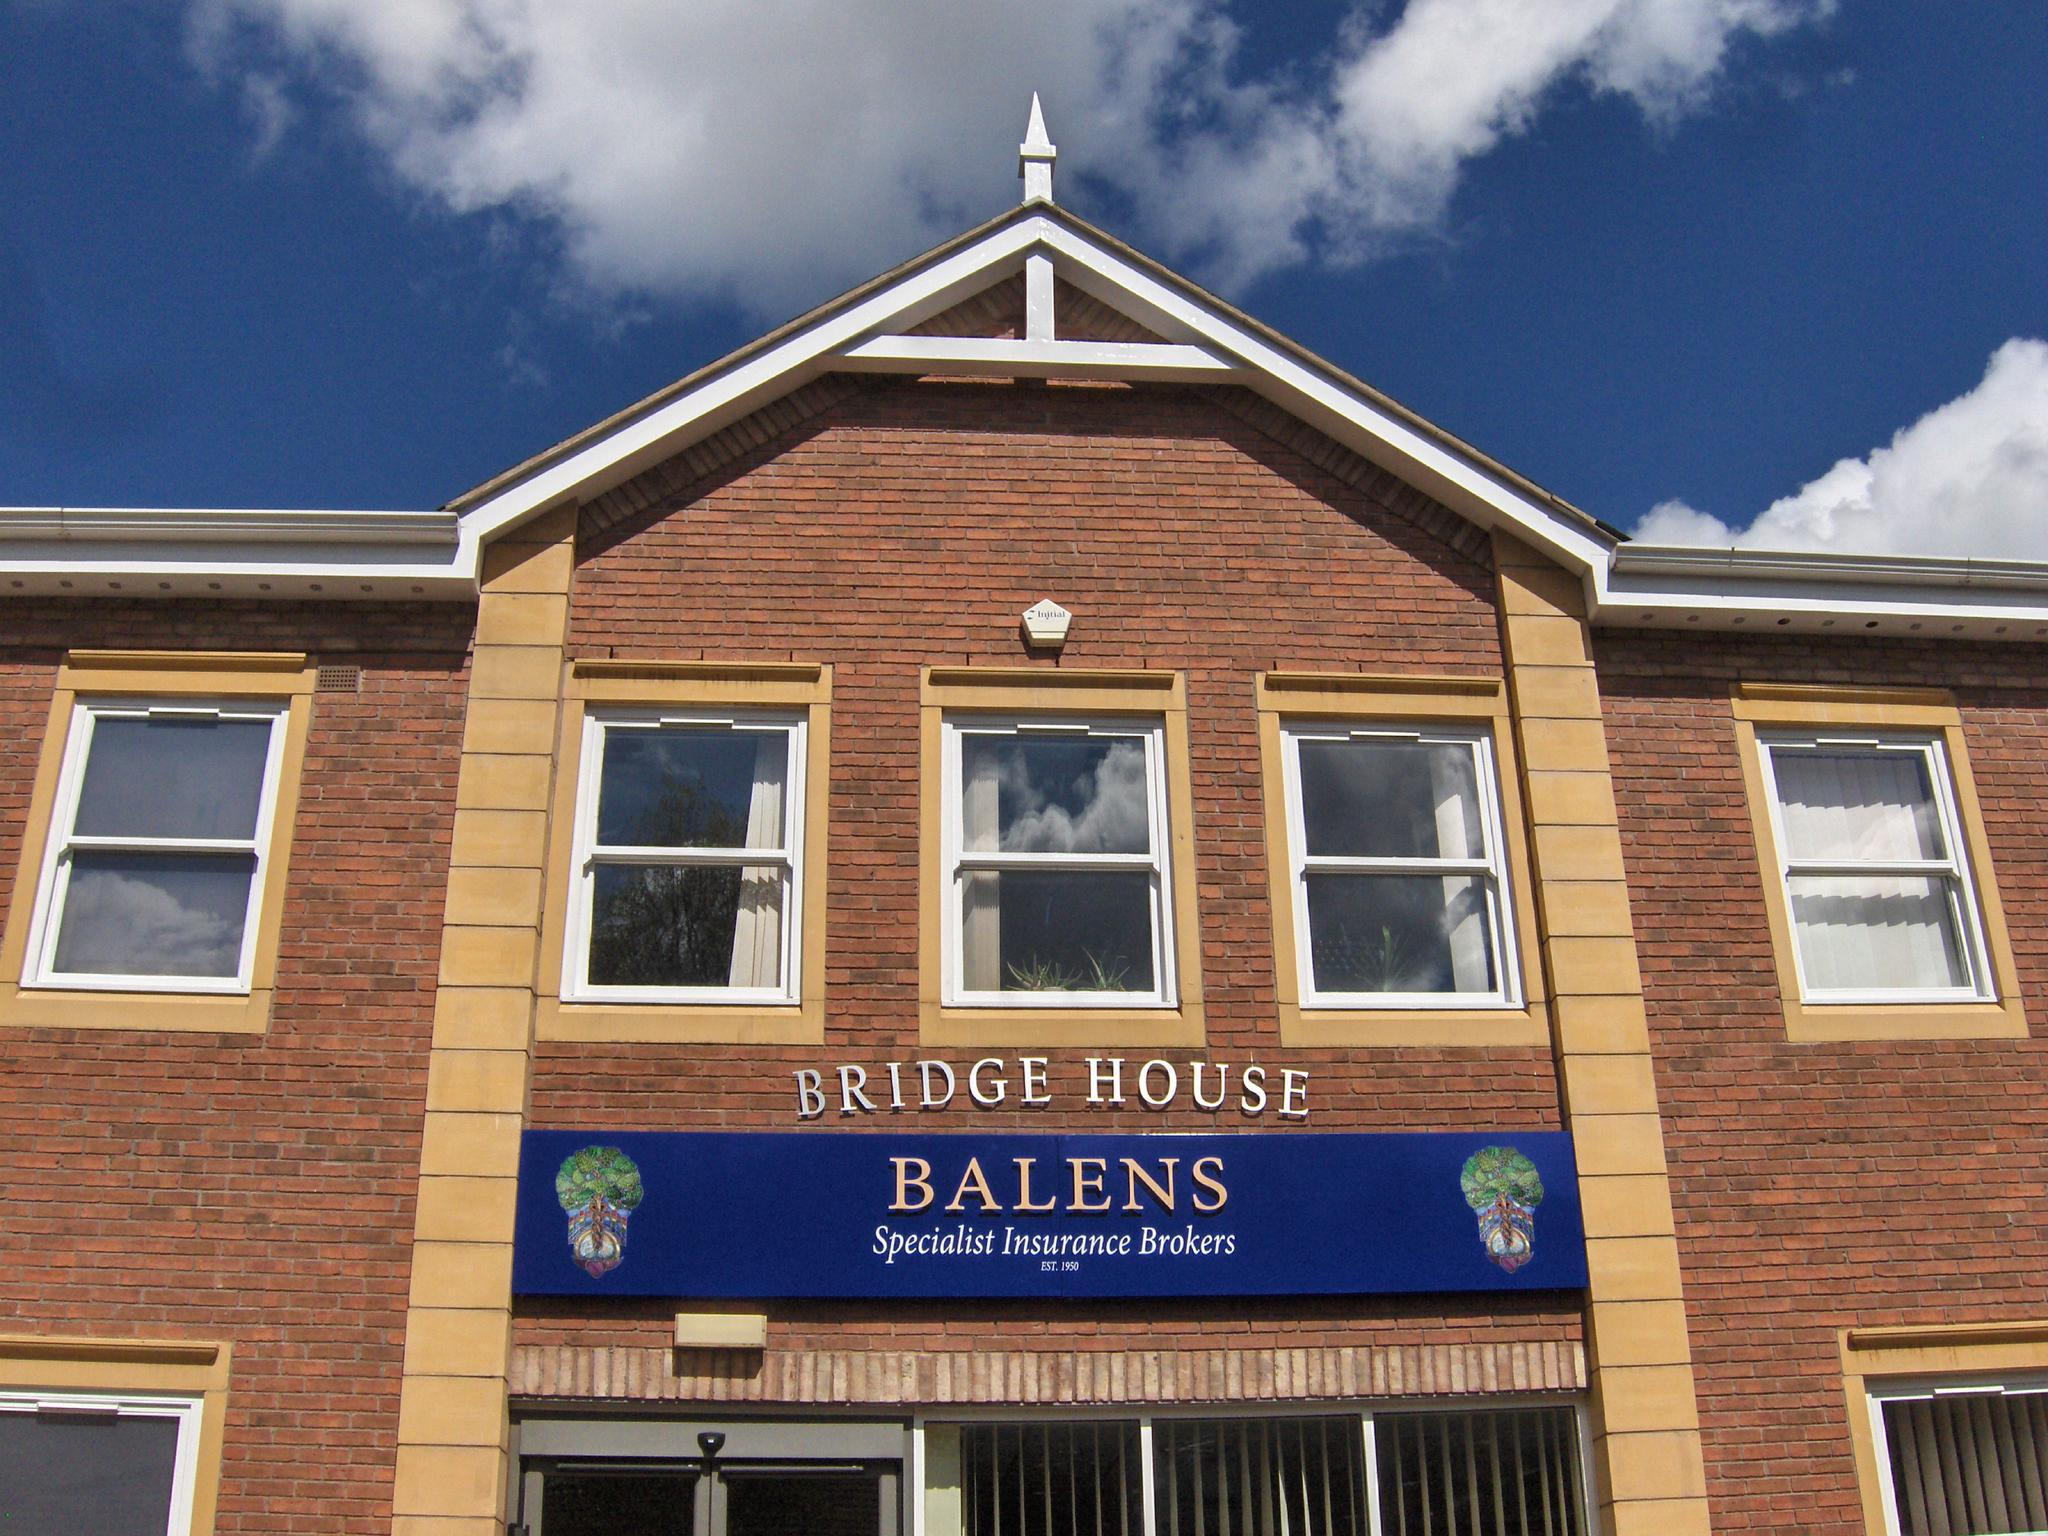 Balen's Specialist Insurance Brokers Proud to continue their long history....